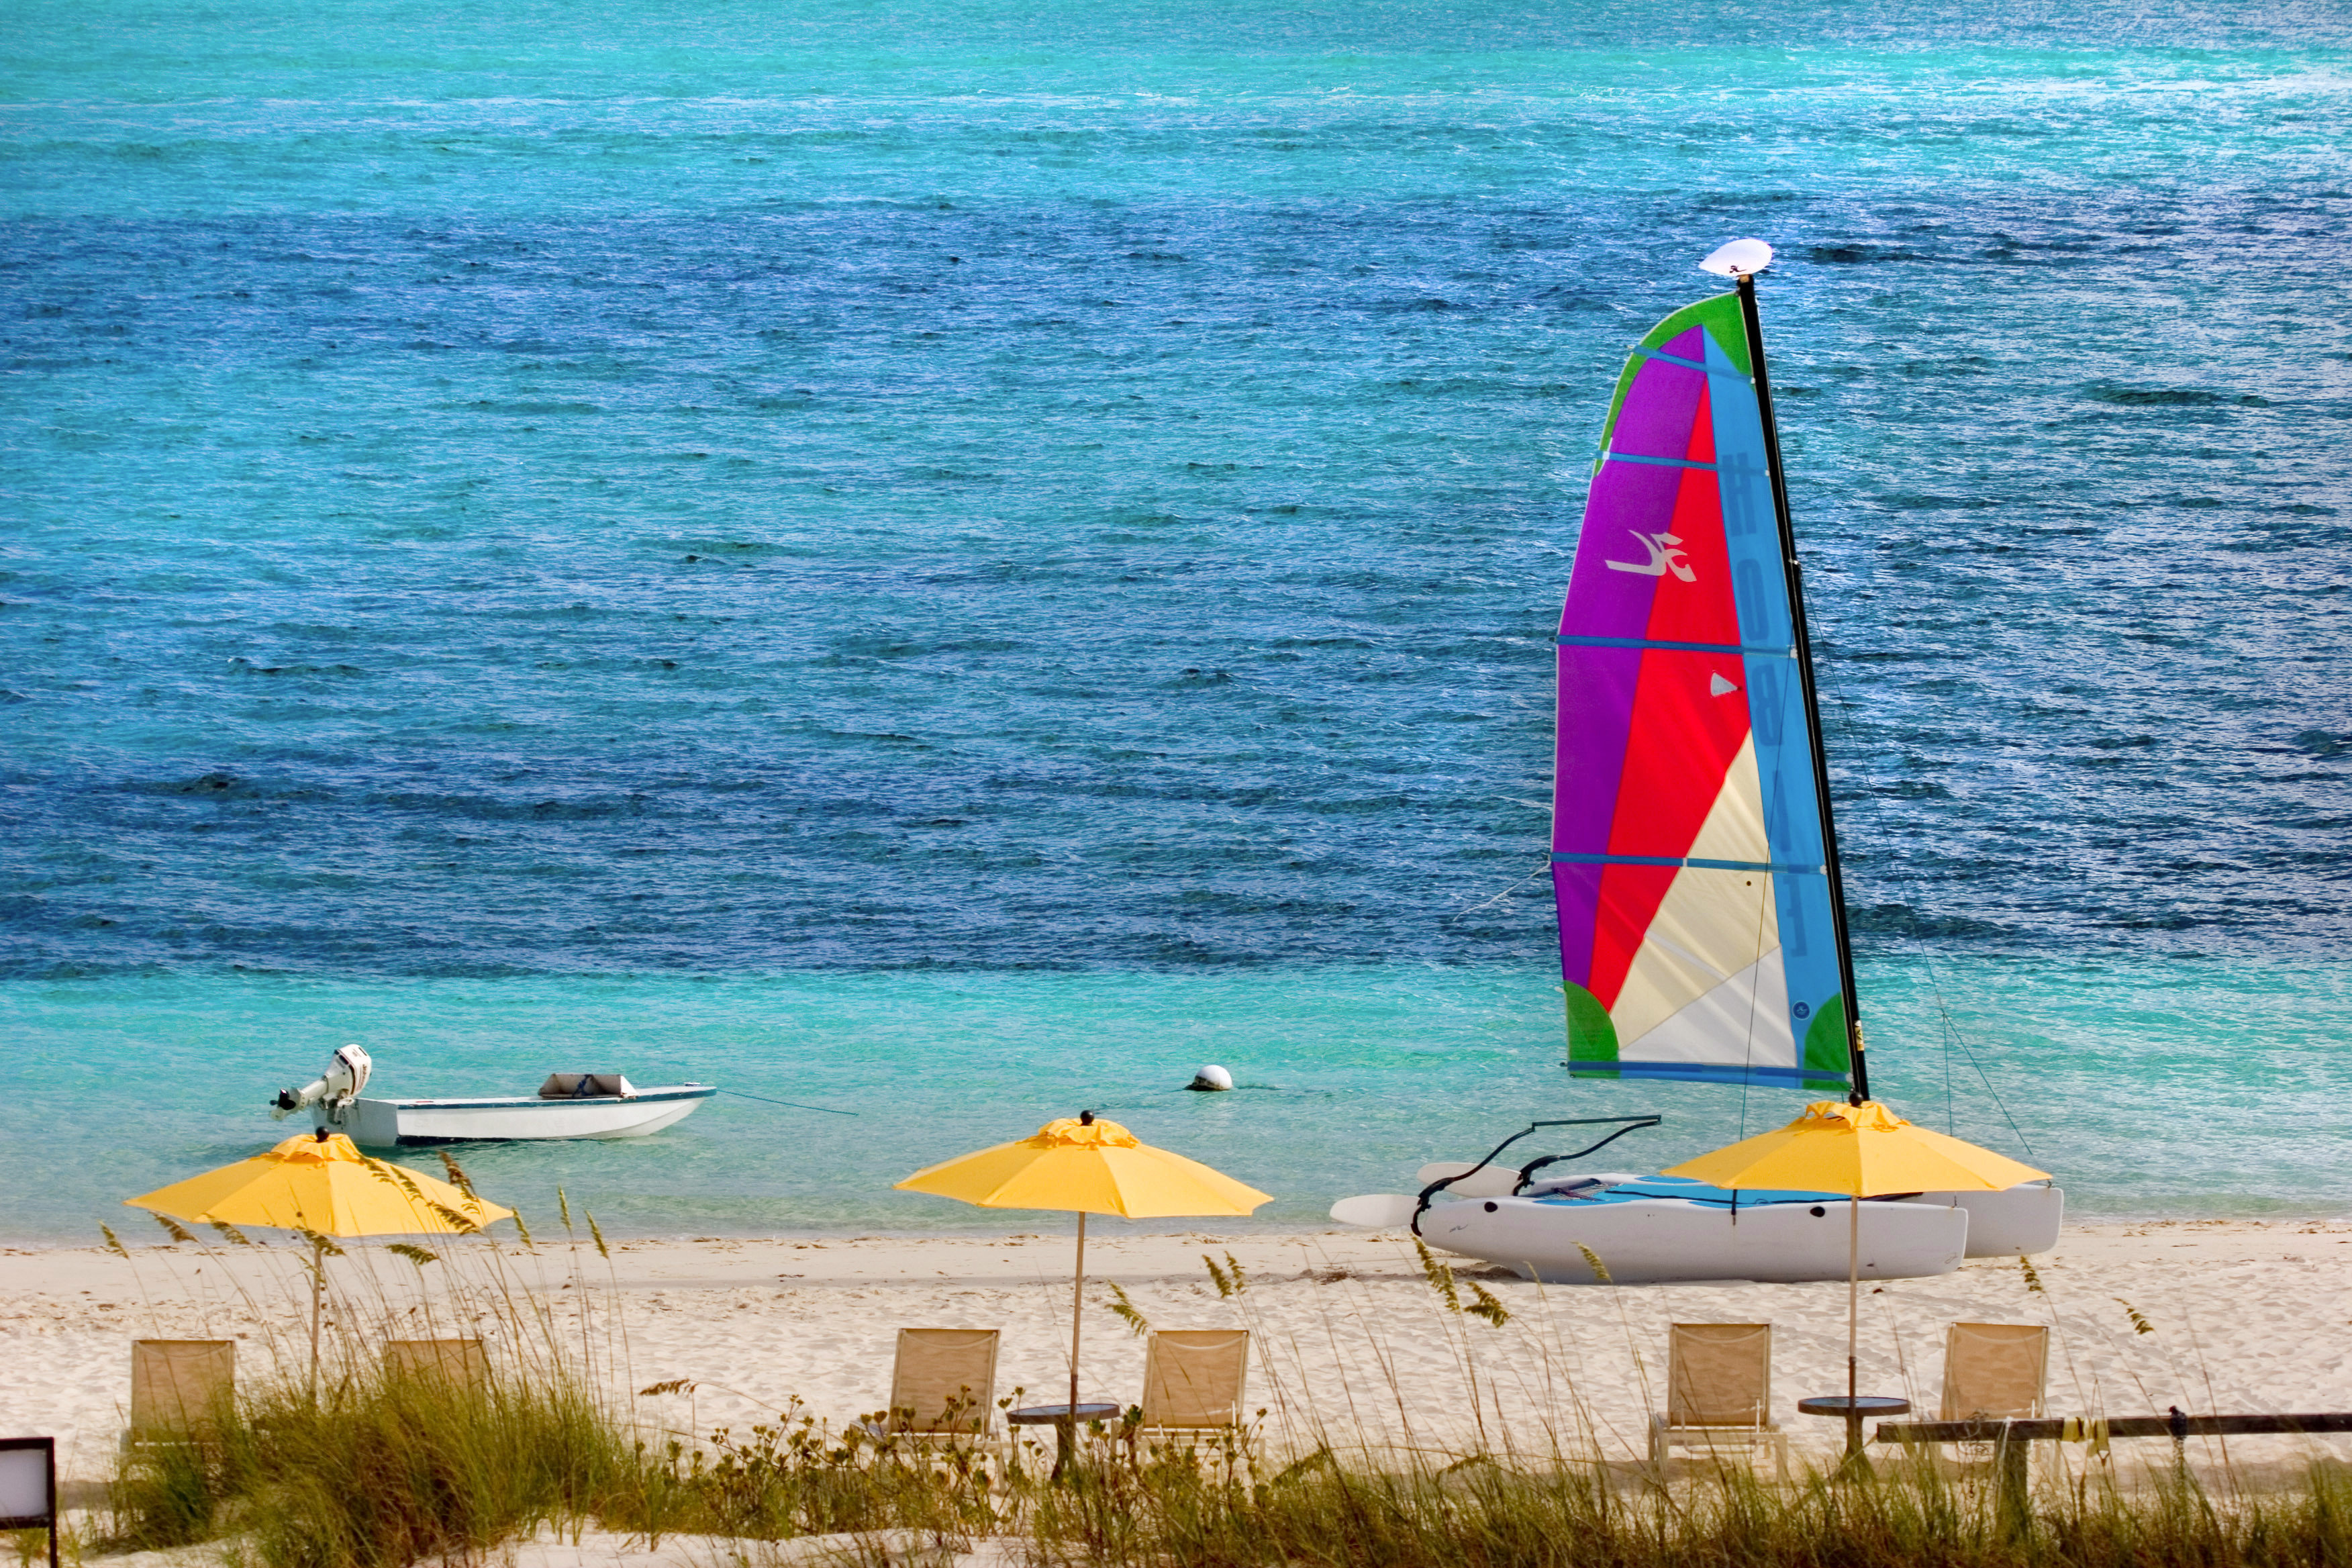 Adventure Beach Beachfront Boat Ocean water Sea vehicle sail yellow sailboat watercraft sailing sports windsurfing boating Coast wind surfing equipment and supplies shore lined day